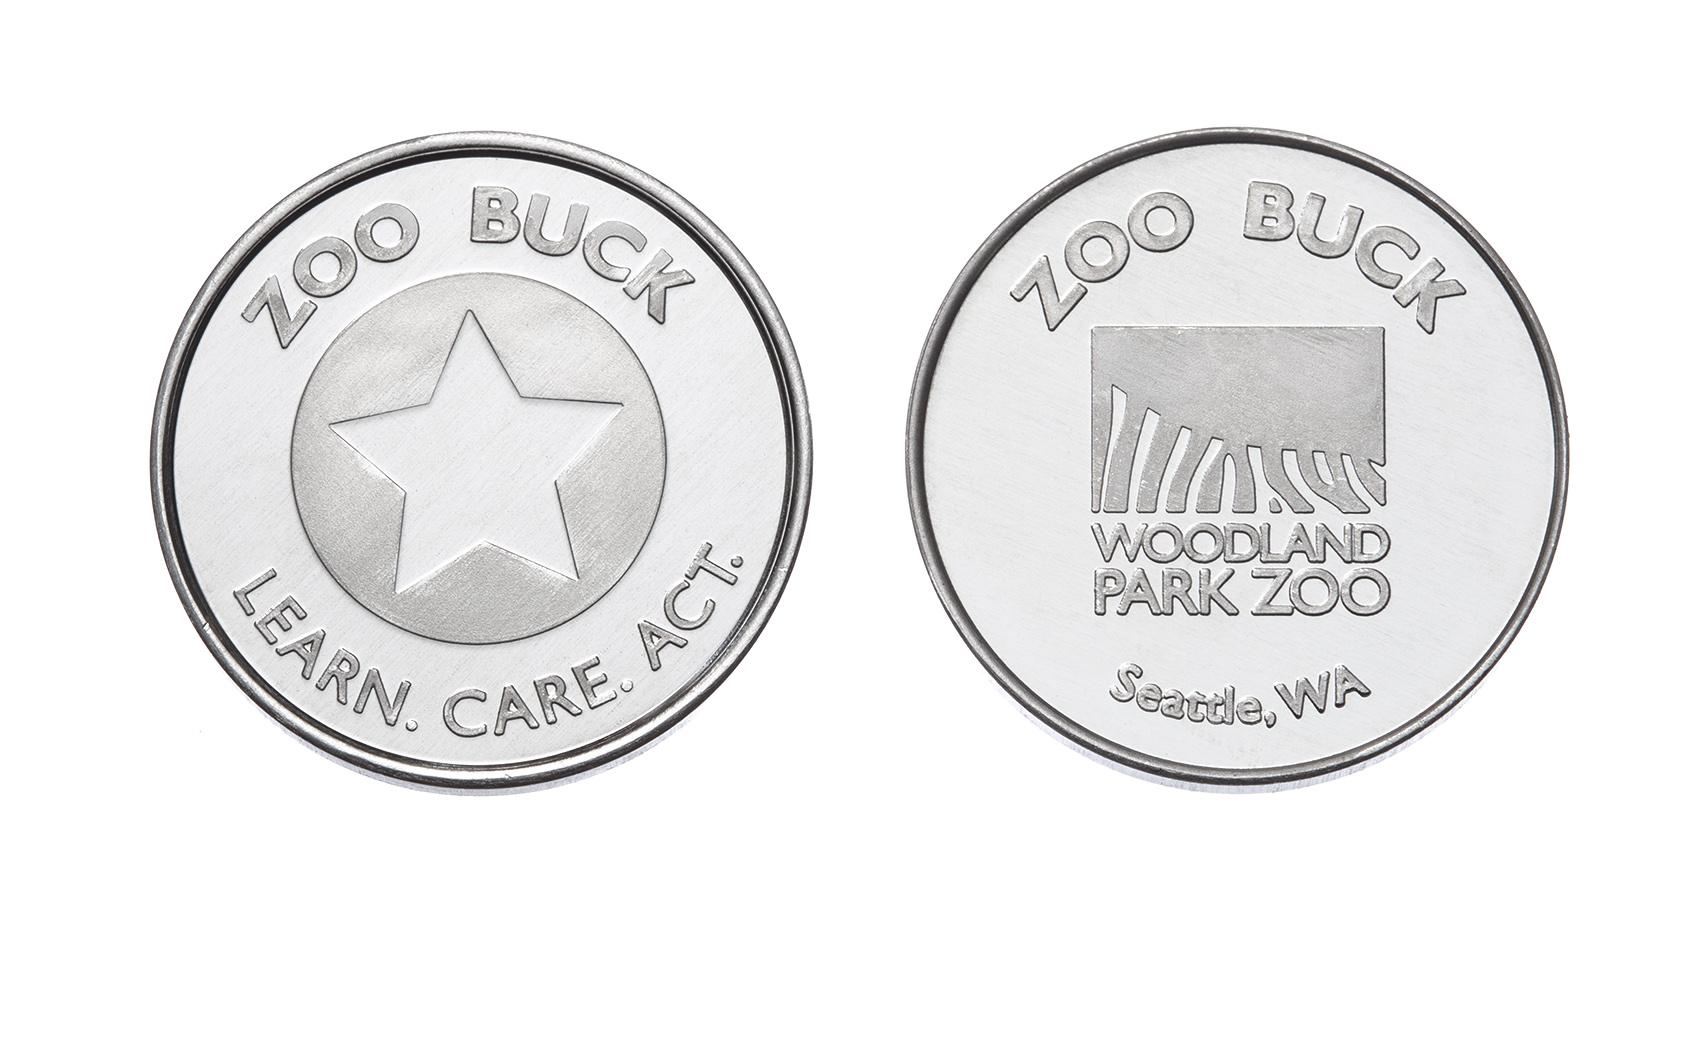 Zoo Bucks Custom Aluminum Tokens